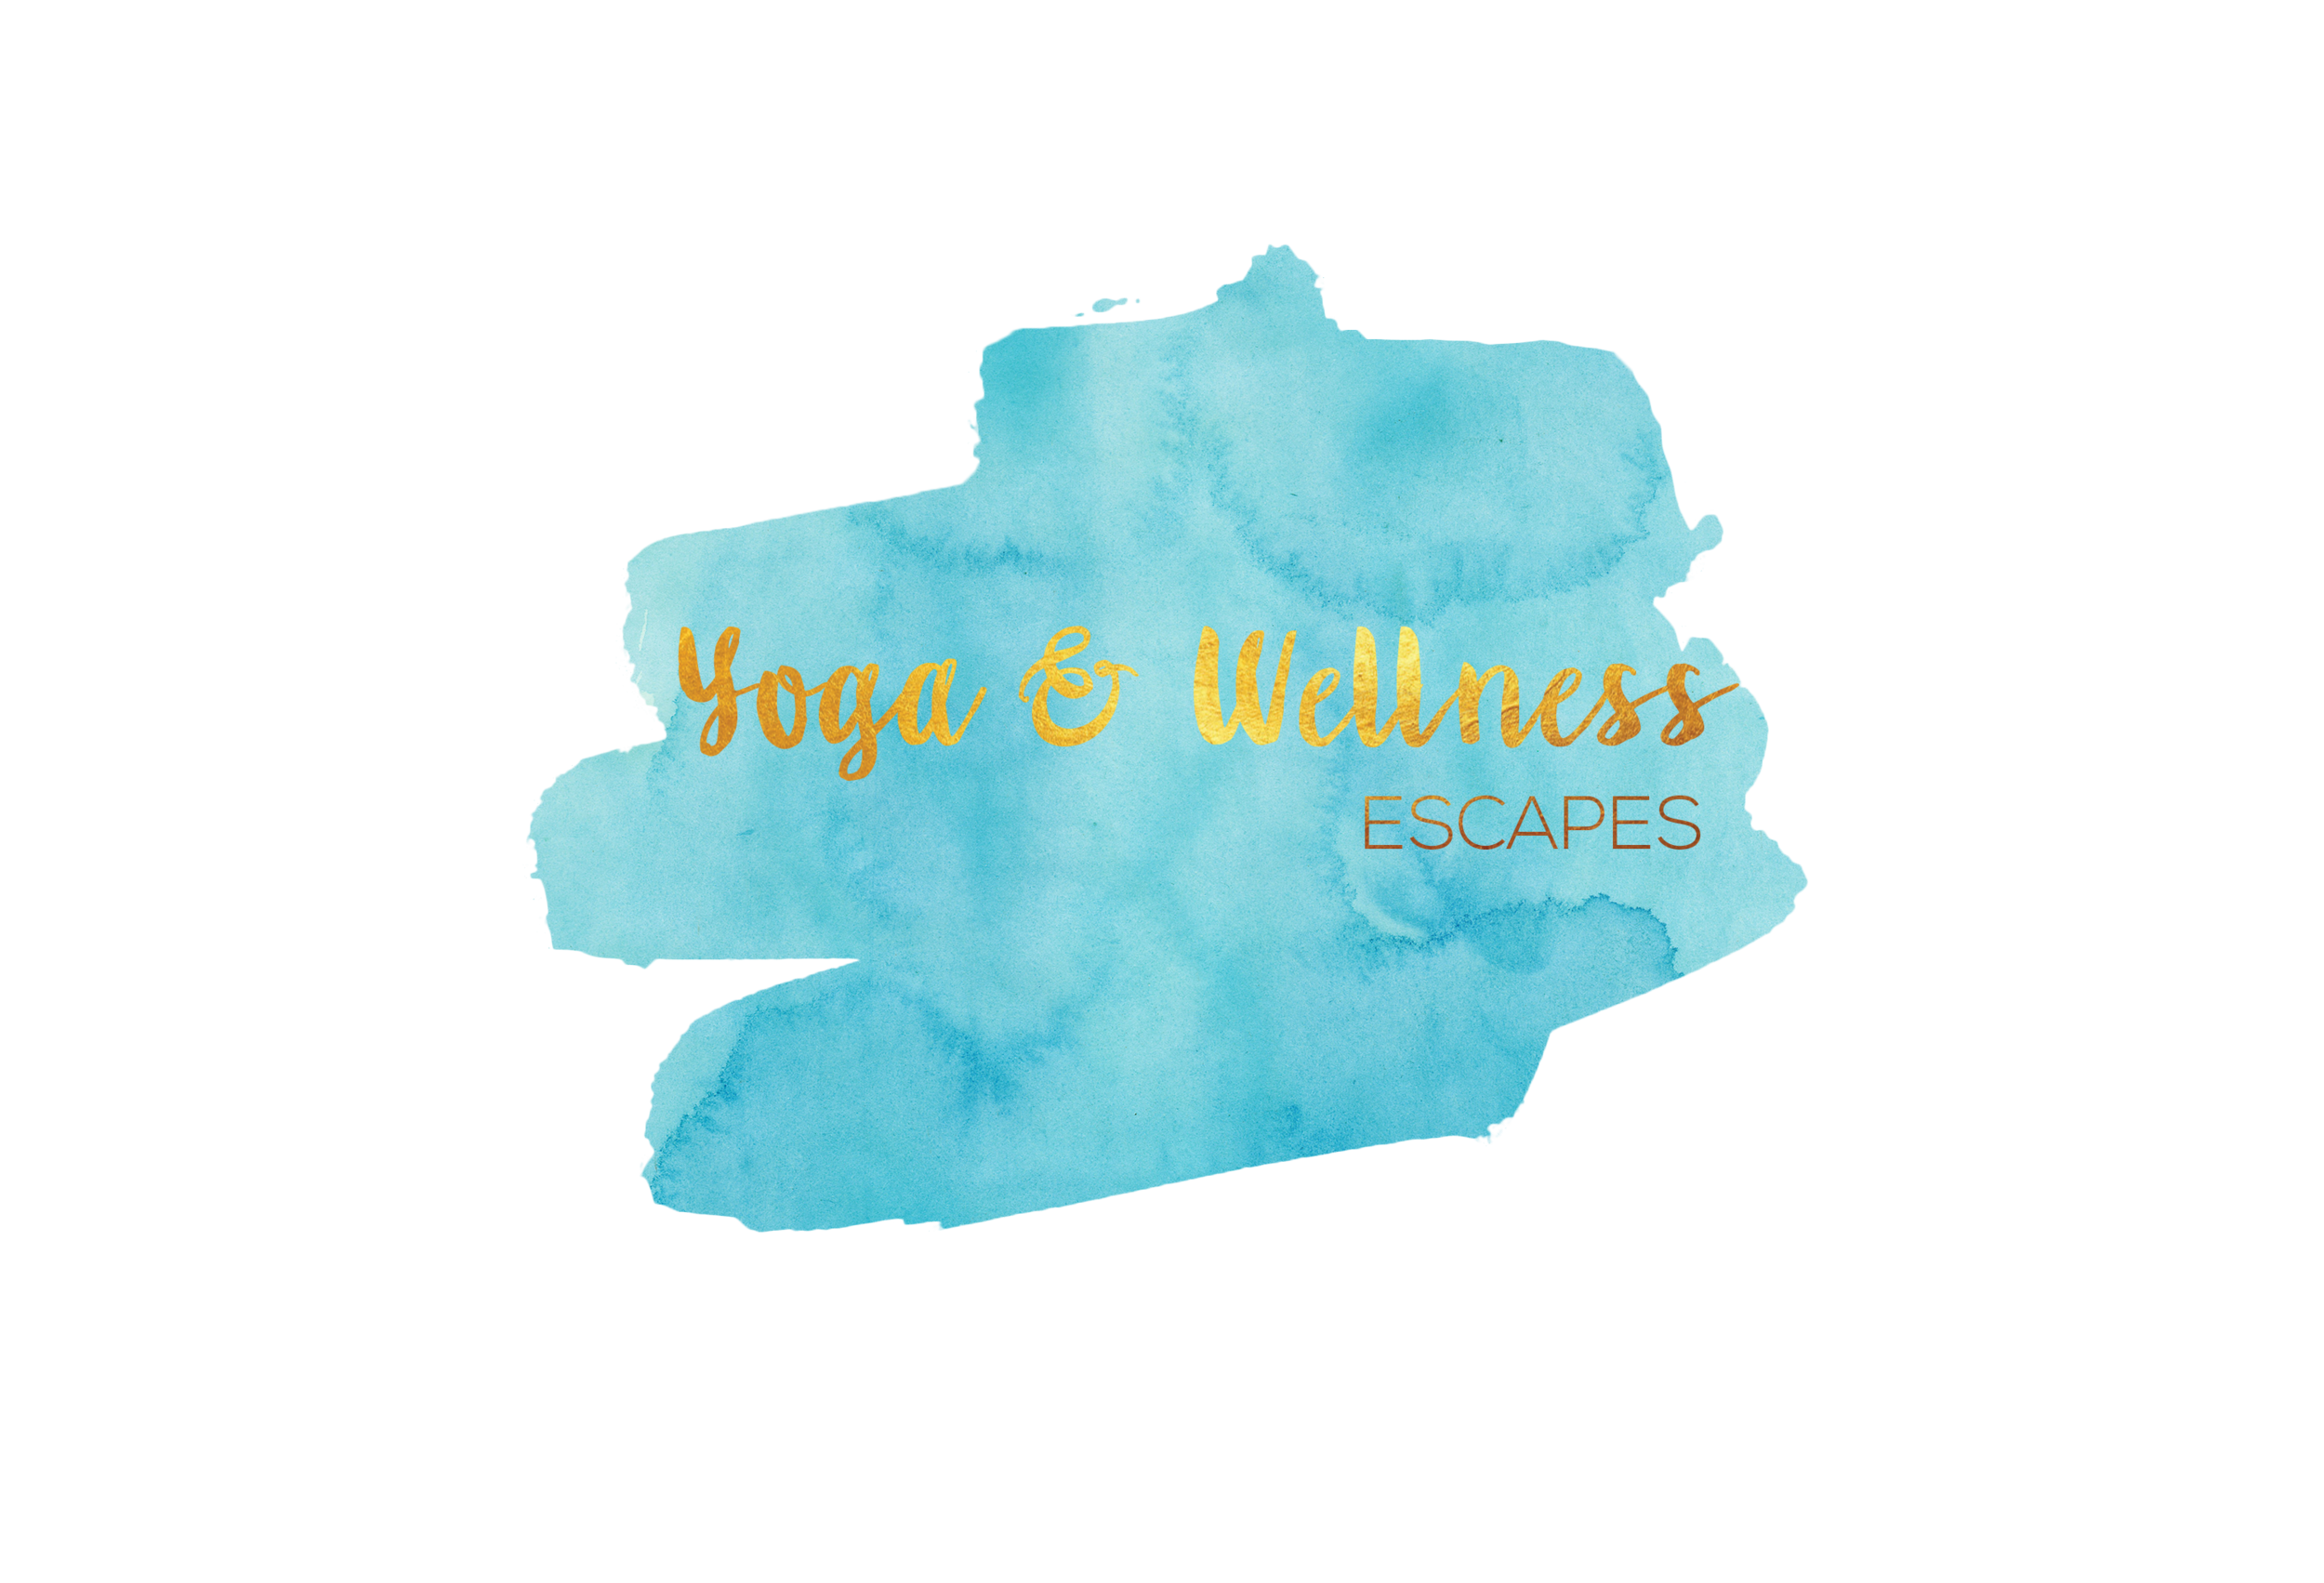 yoga_and_wellness_escapes_logo.png